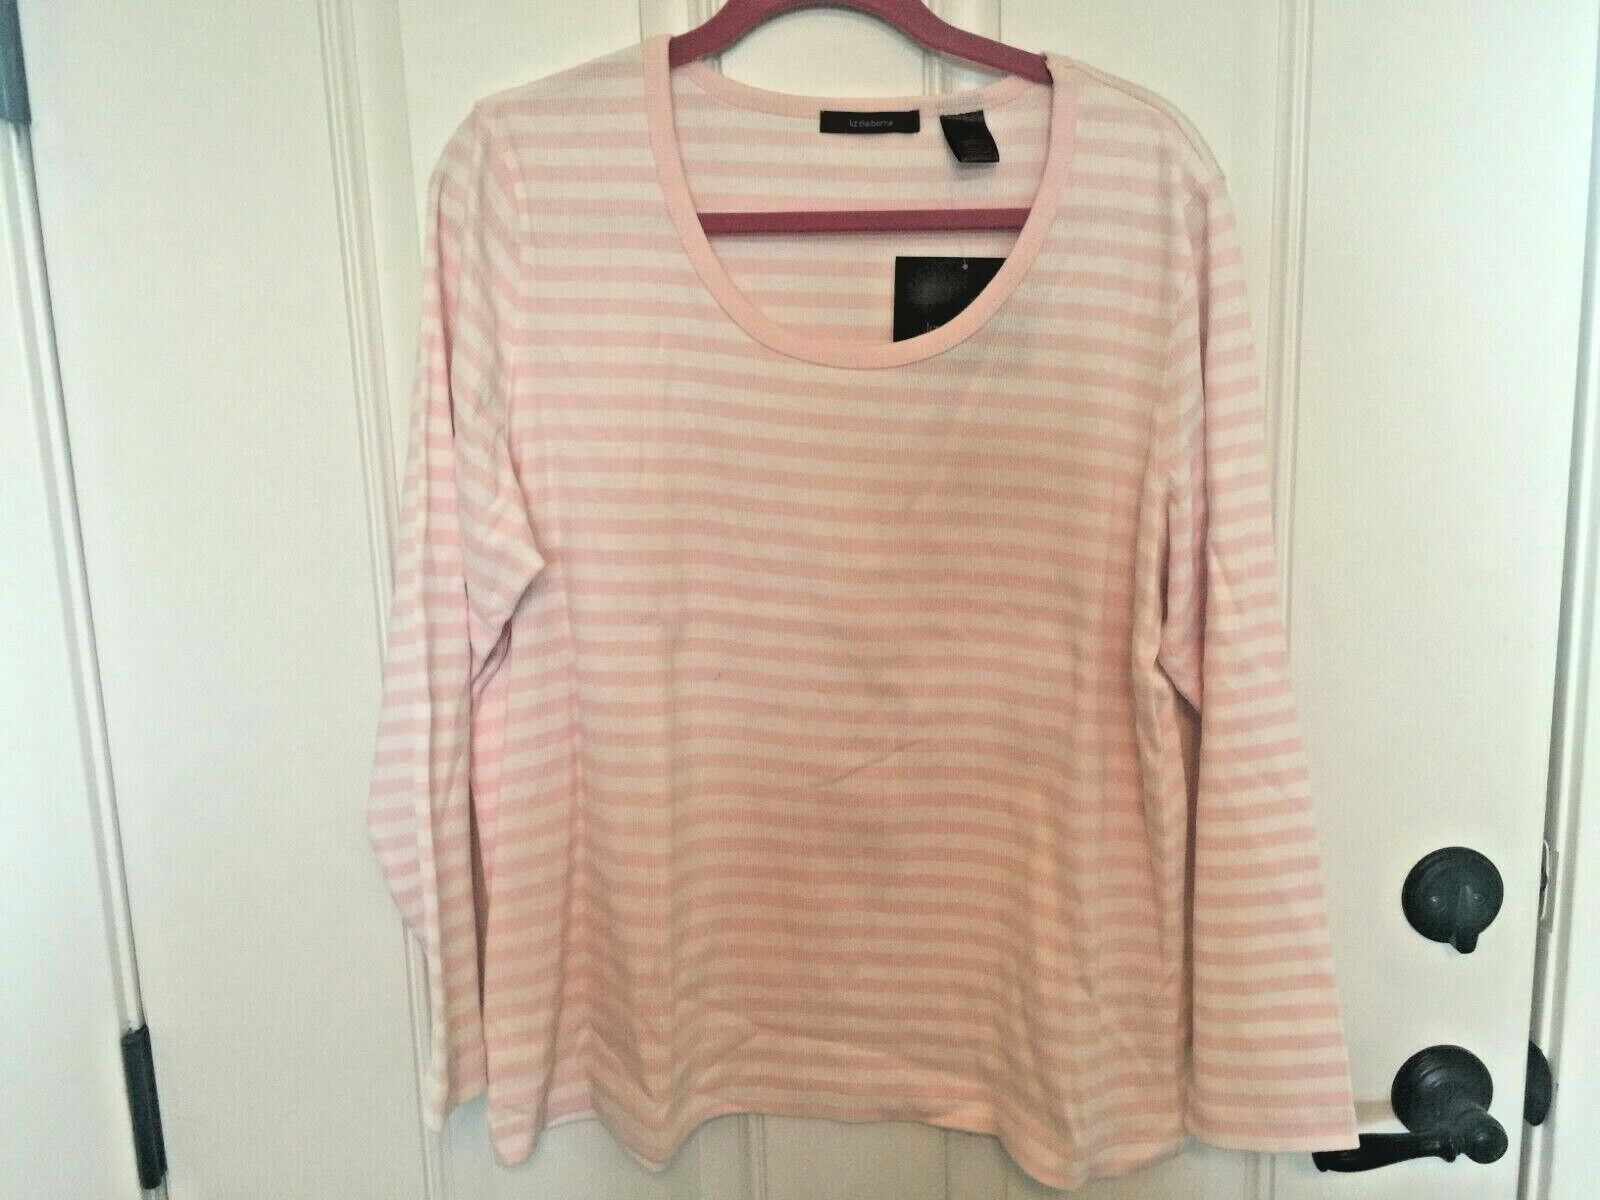 NEW/TAGS! ~LIZ CLAIBORNE~ STRETCH COTTON KNIT TOP PINK & WHI